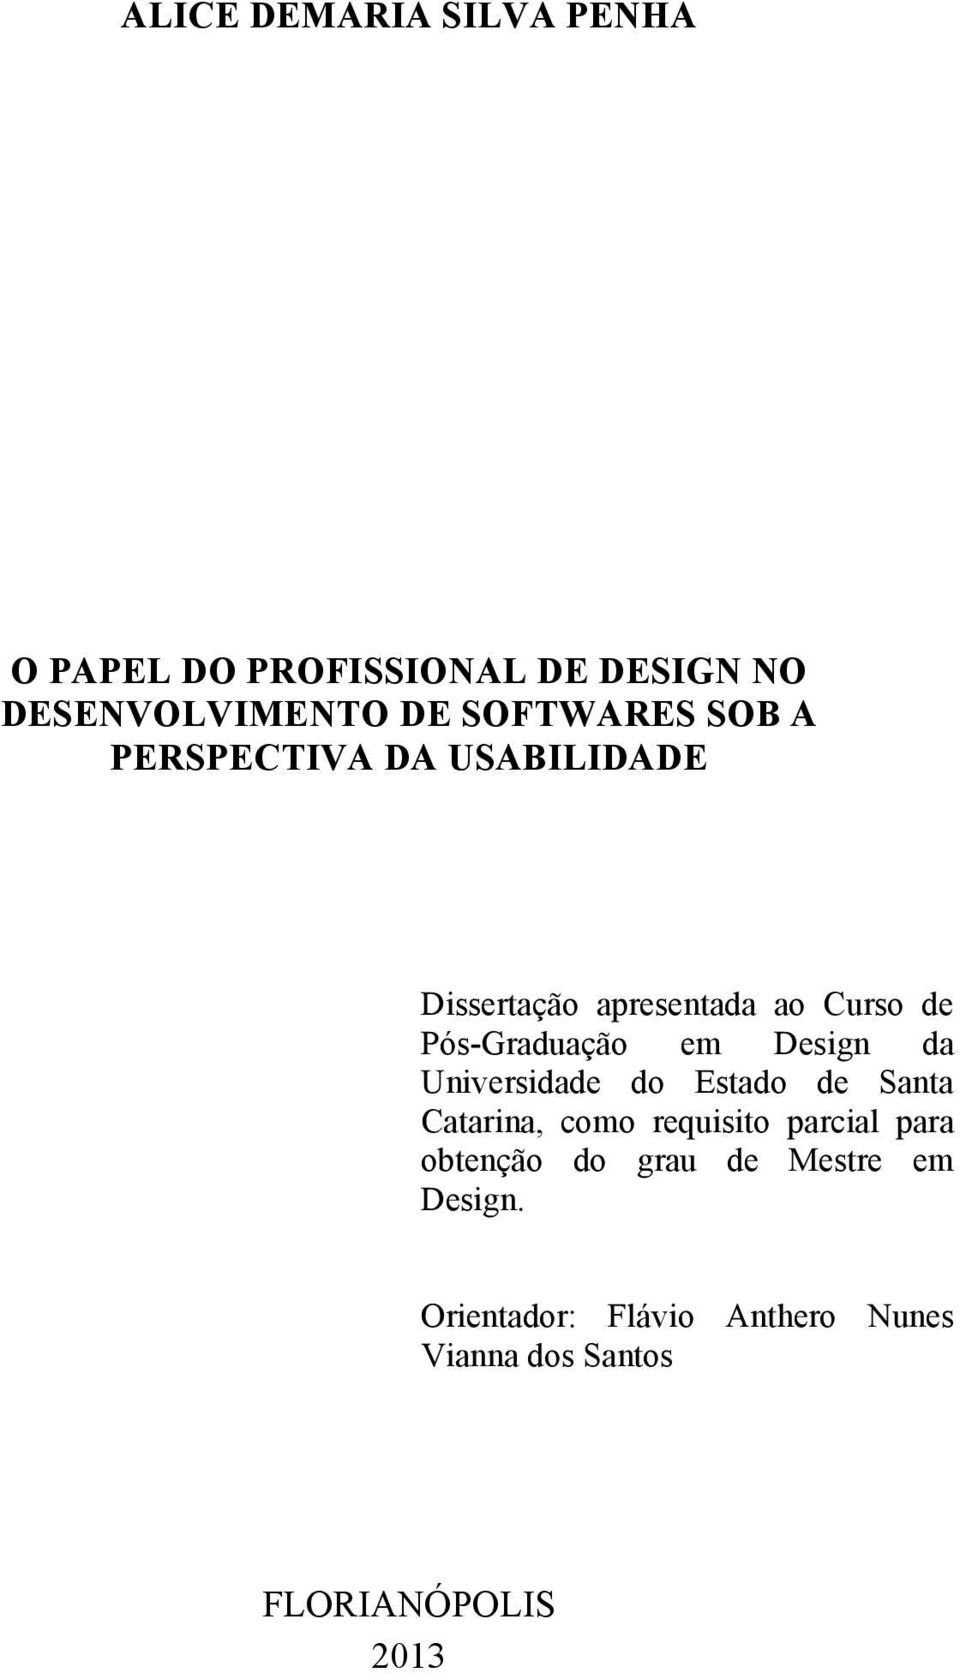 Design da Universidade do Estado de Santa Catarina, como requisito parcial para obtenção do